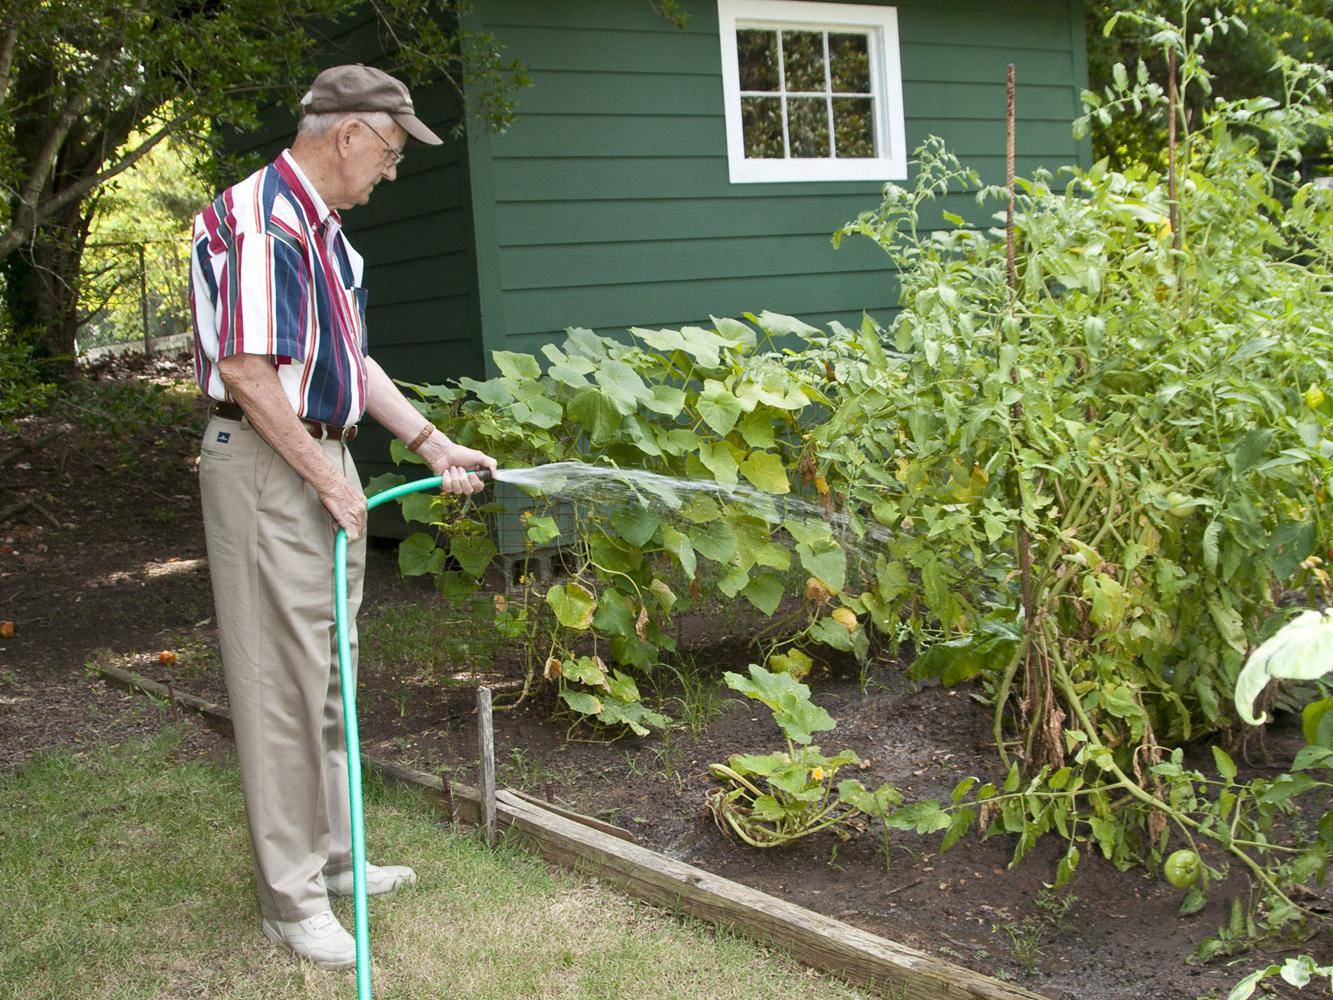 Harold Rone of Starkville uses a hose to water his garden when rainfall is not adequate. If the idea of a hose doesn't appeal to you, consider installing an irrigation system. (Photo by Scott Corey)